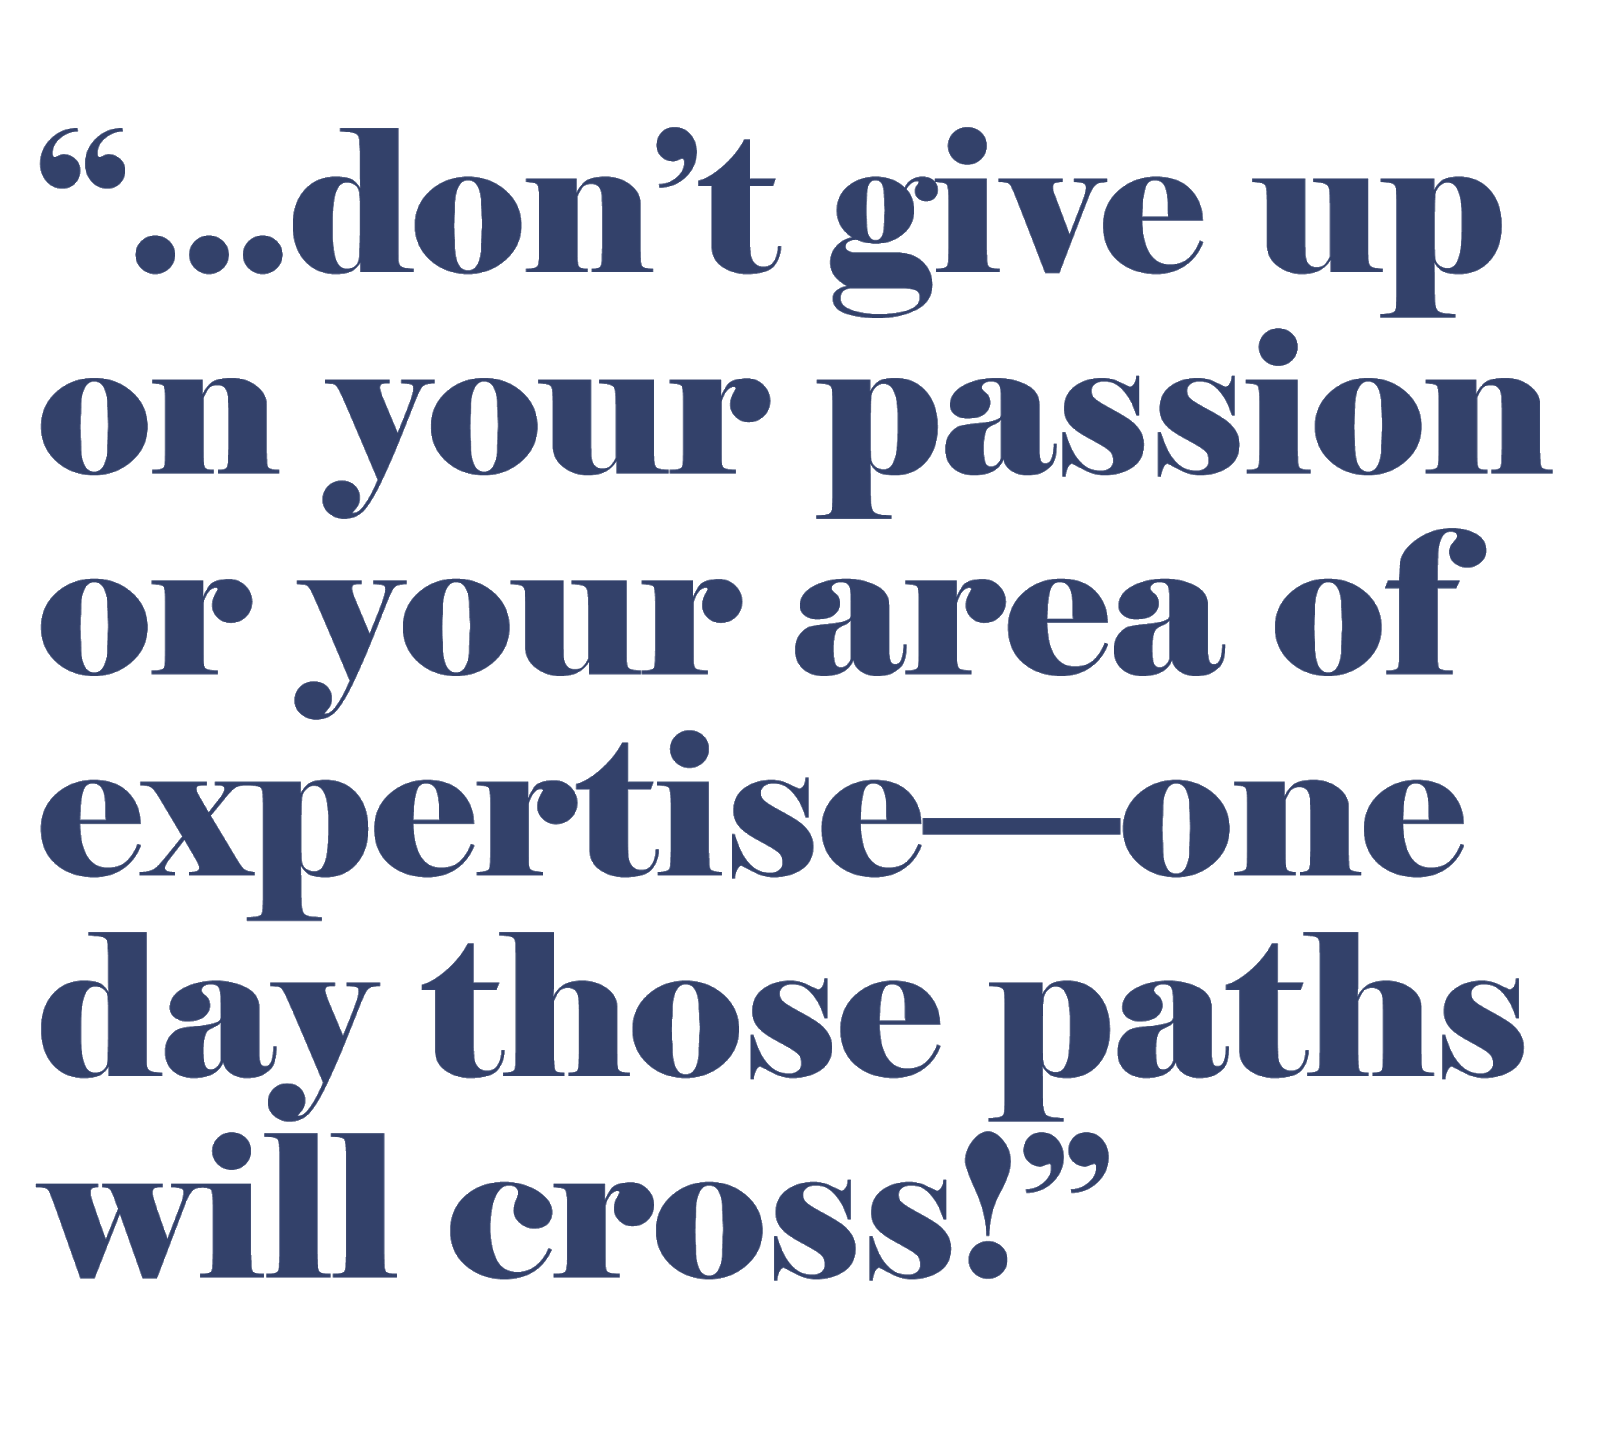 "Pullquote: ""... don't give up on your passion or your area of expertise—one day those paths will cross!"""